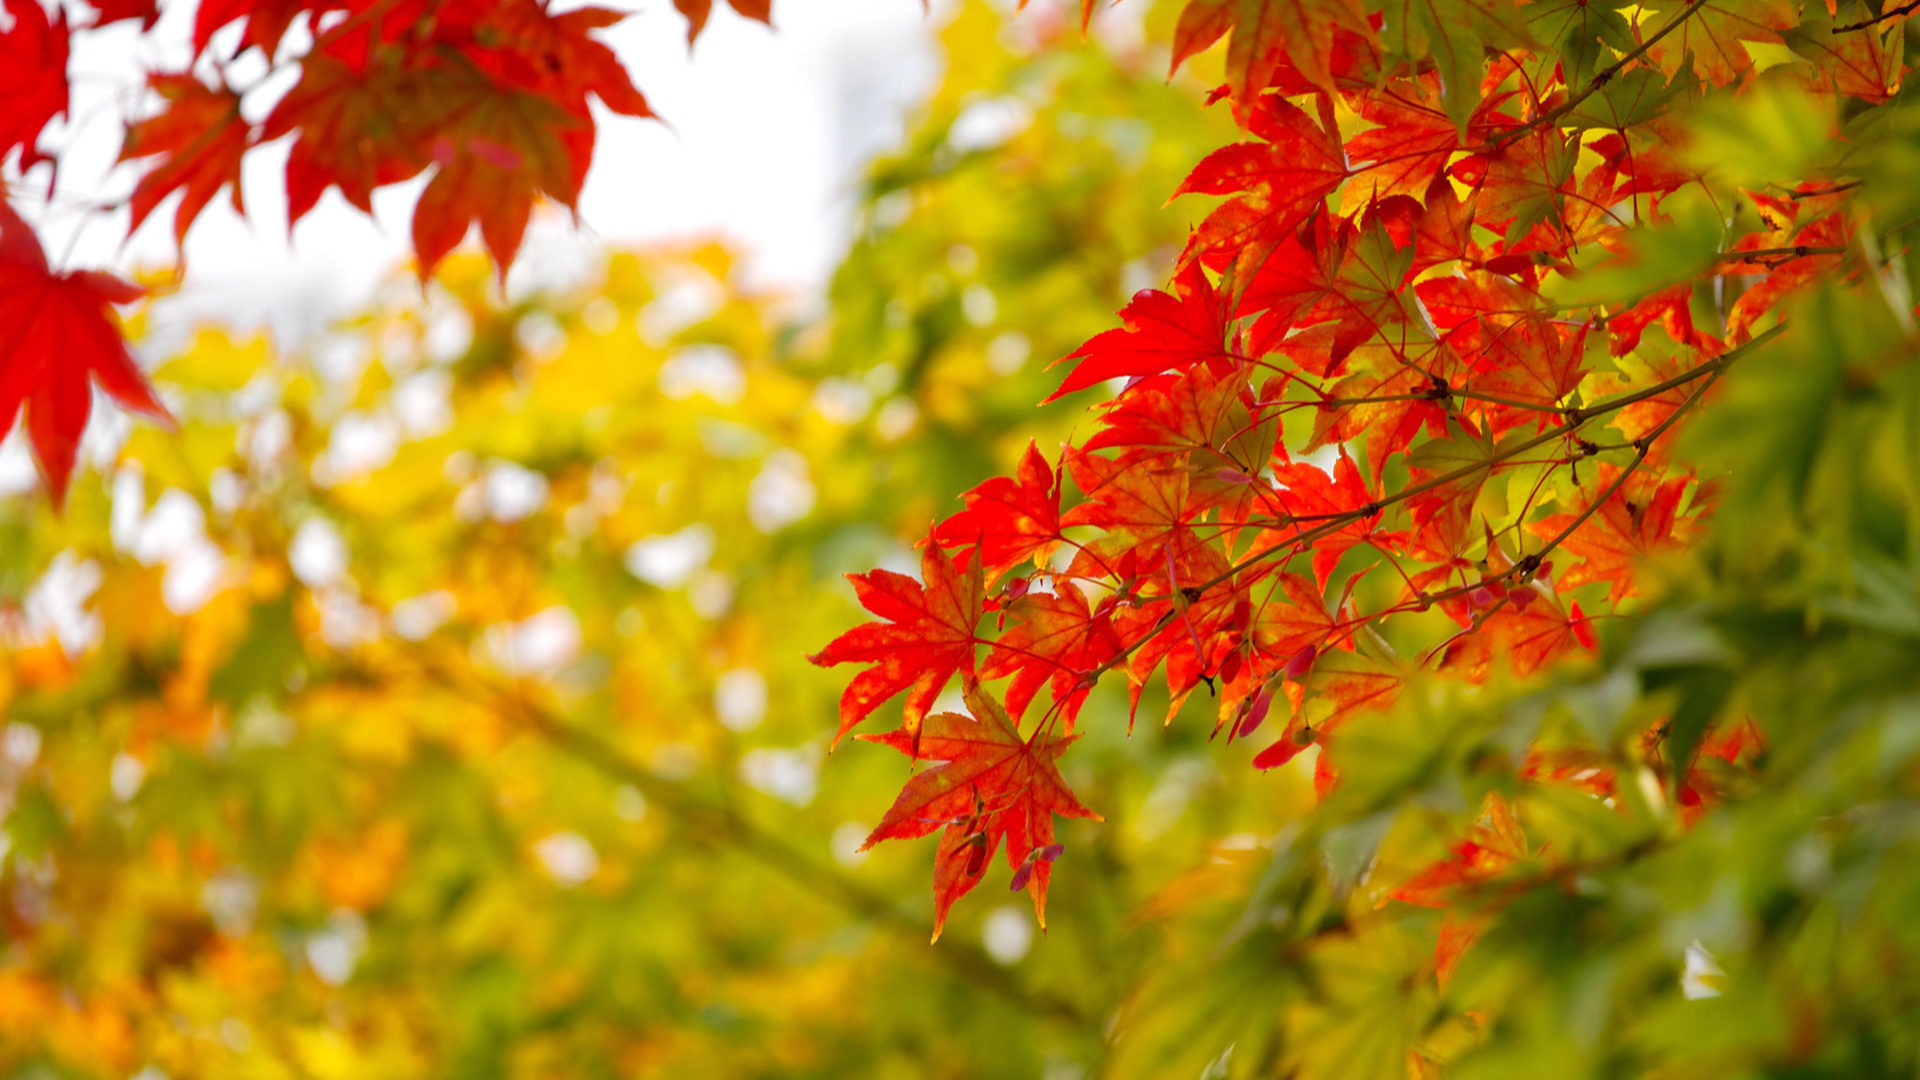 red and yellow maple leaves in autumn national symbol on canada 4k ultra hd tv wallpaper for desktop laptop tablet and mobile phones 3840x2400